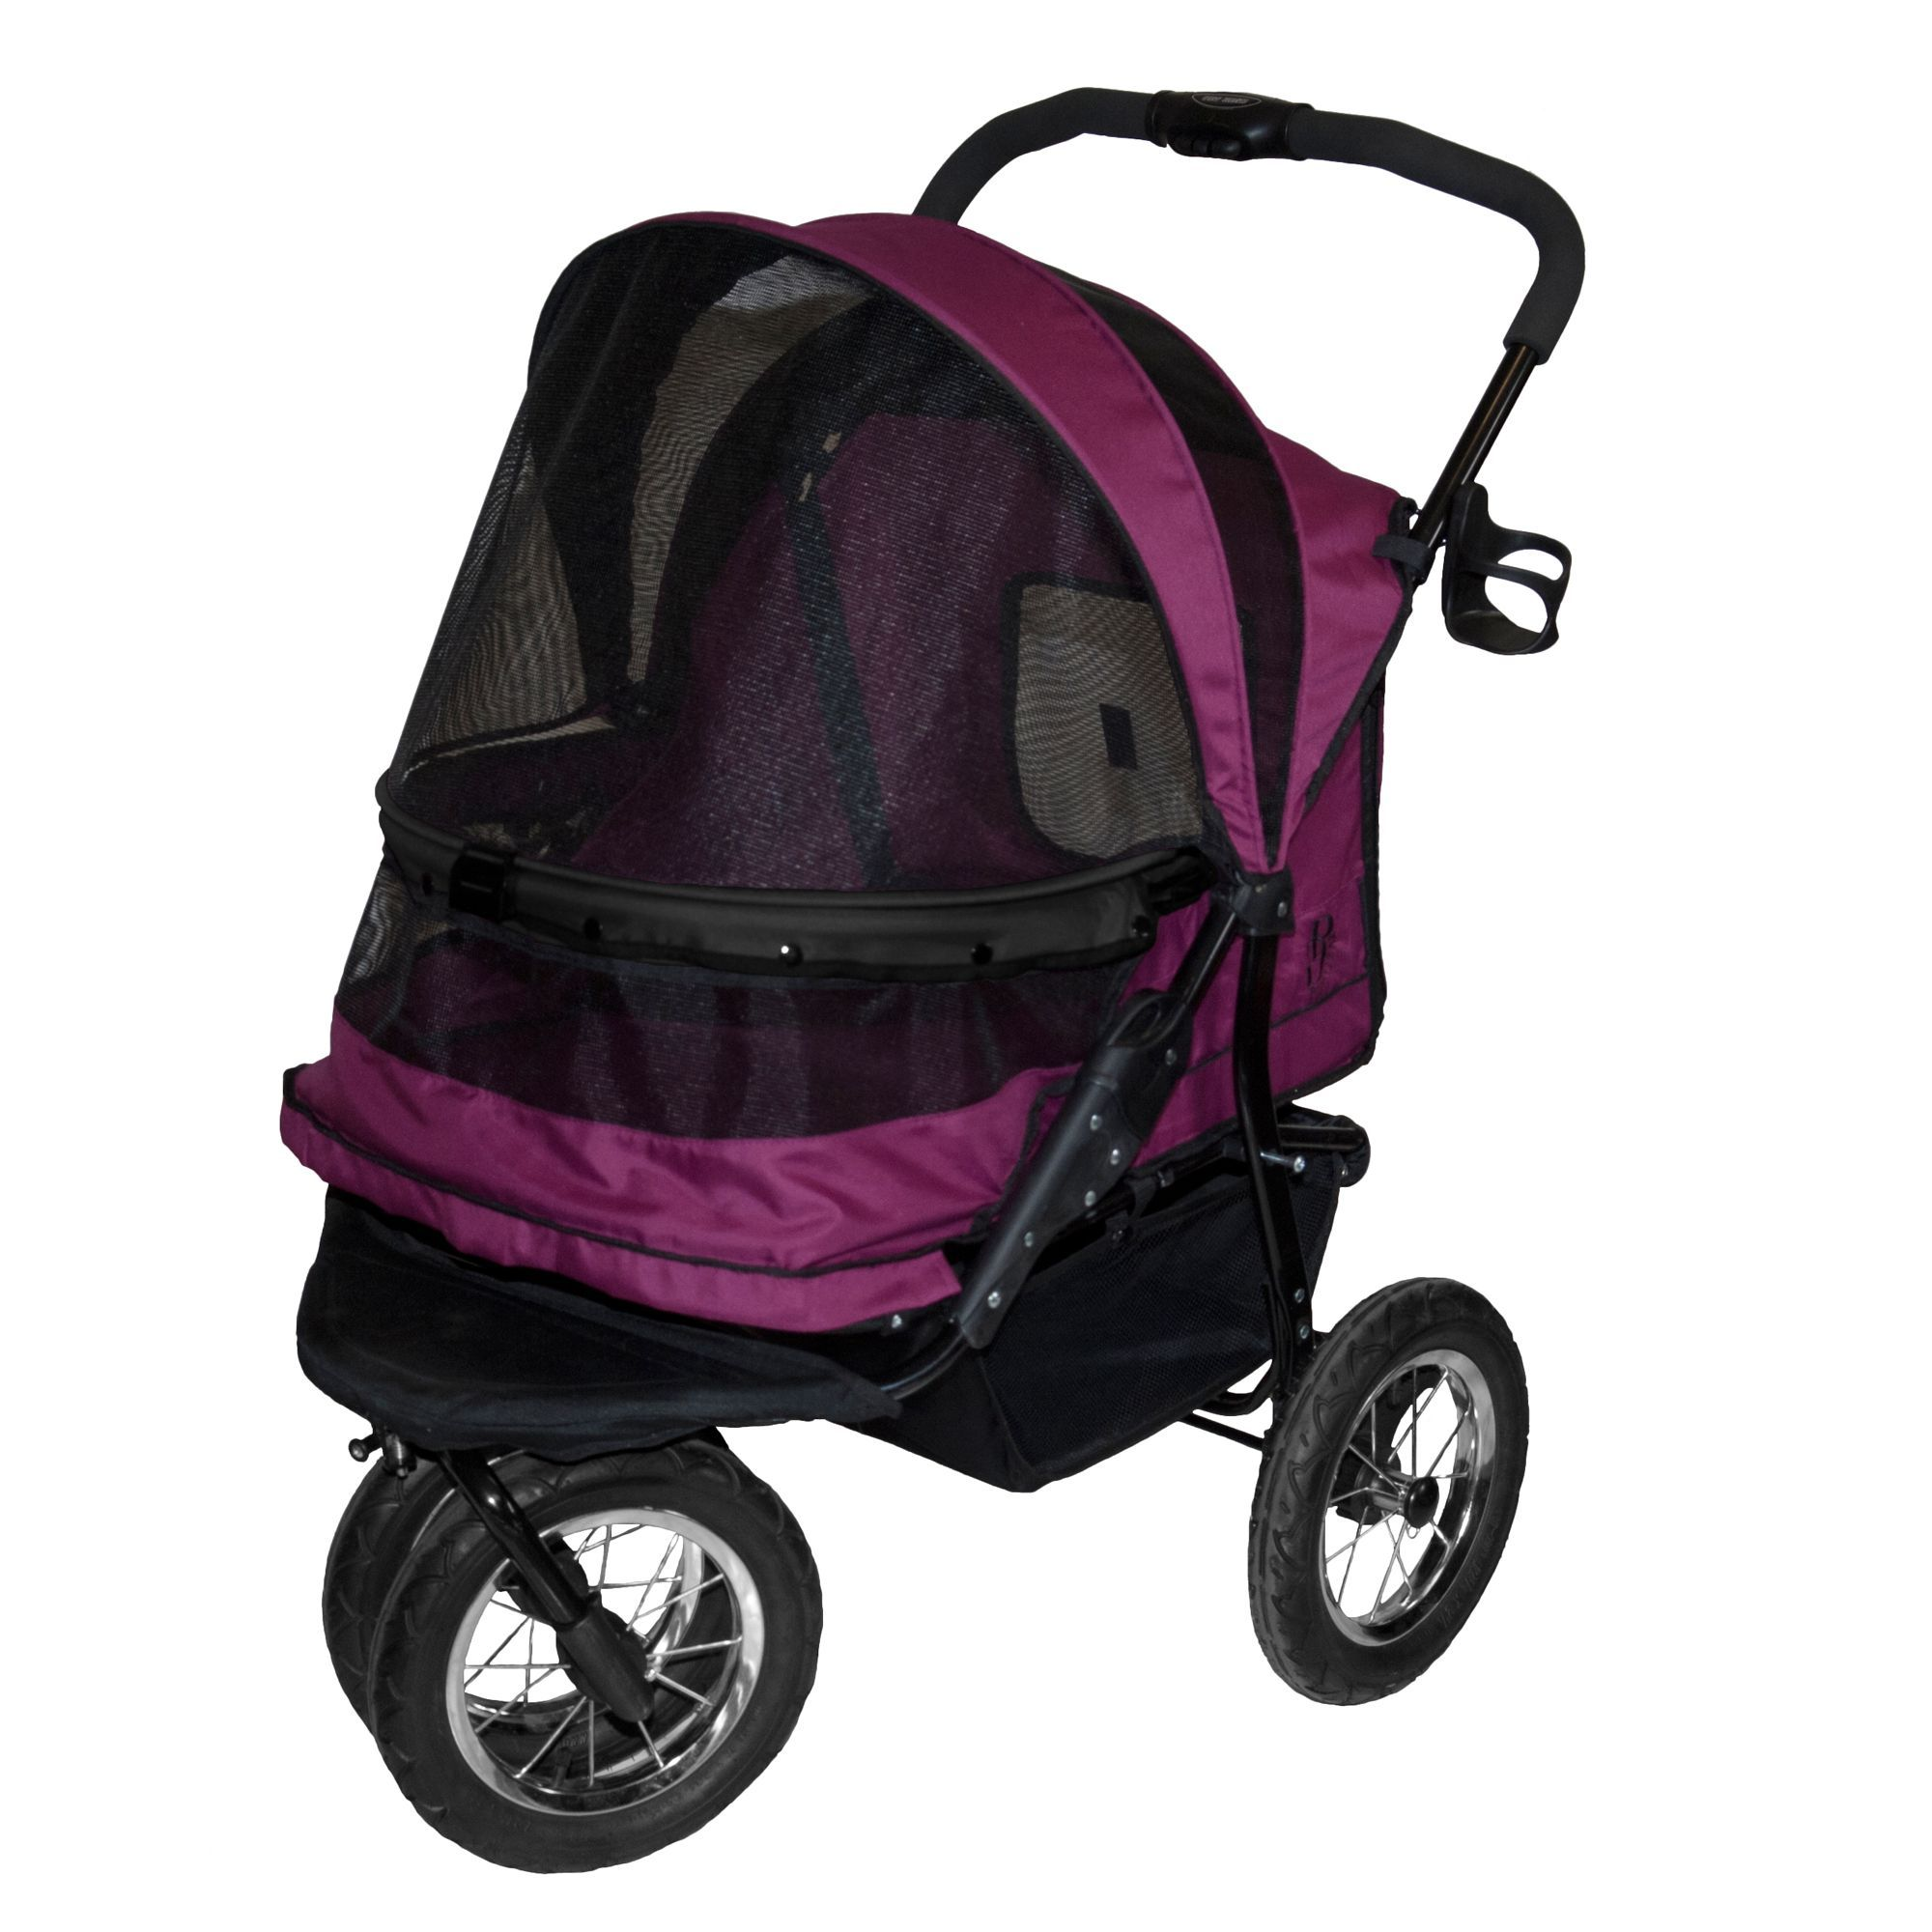 "Pet Gear NOZIP Double Pet Stroller size 27""L x 20""W x 23"